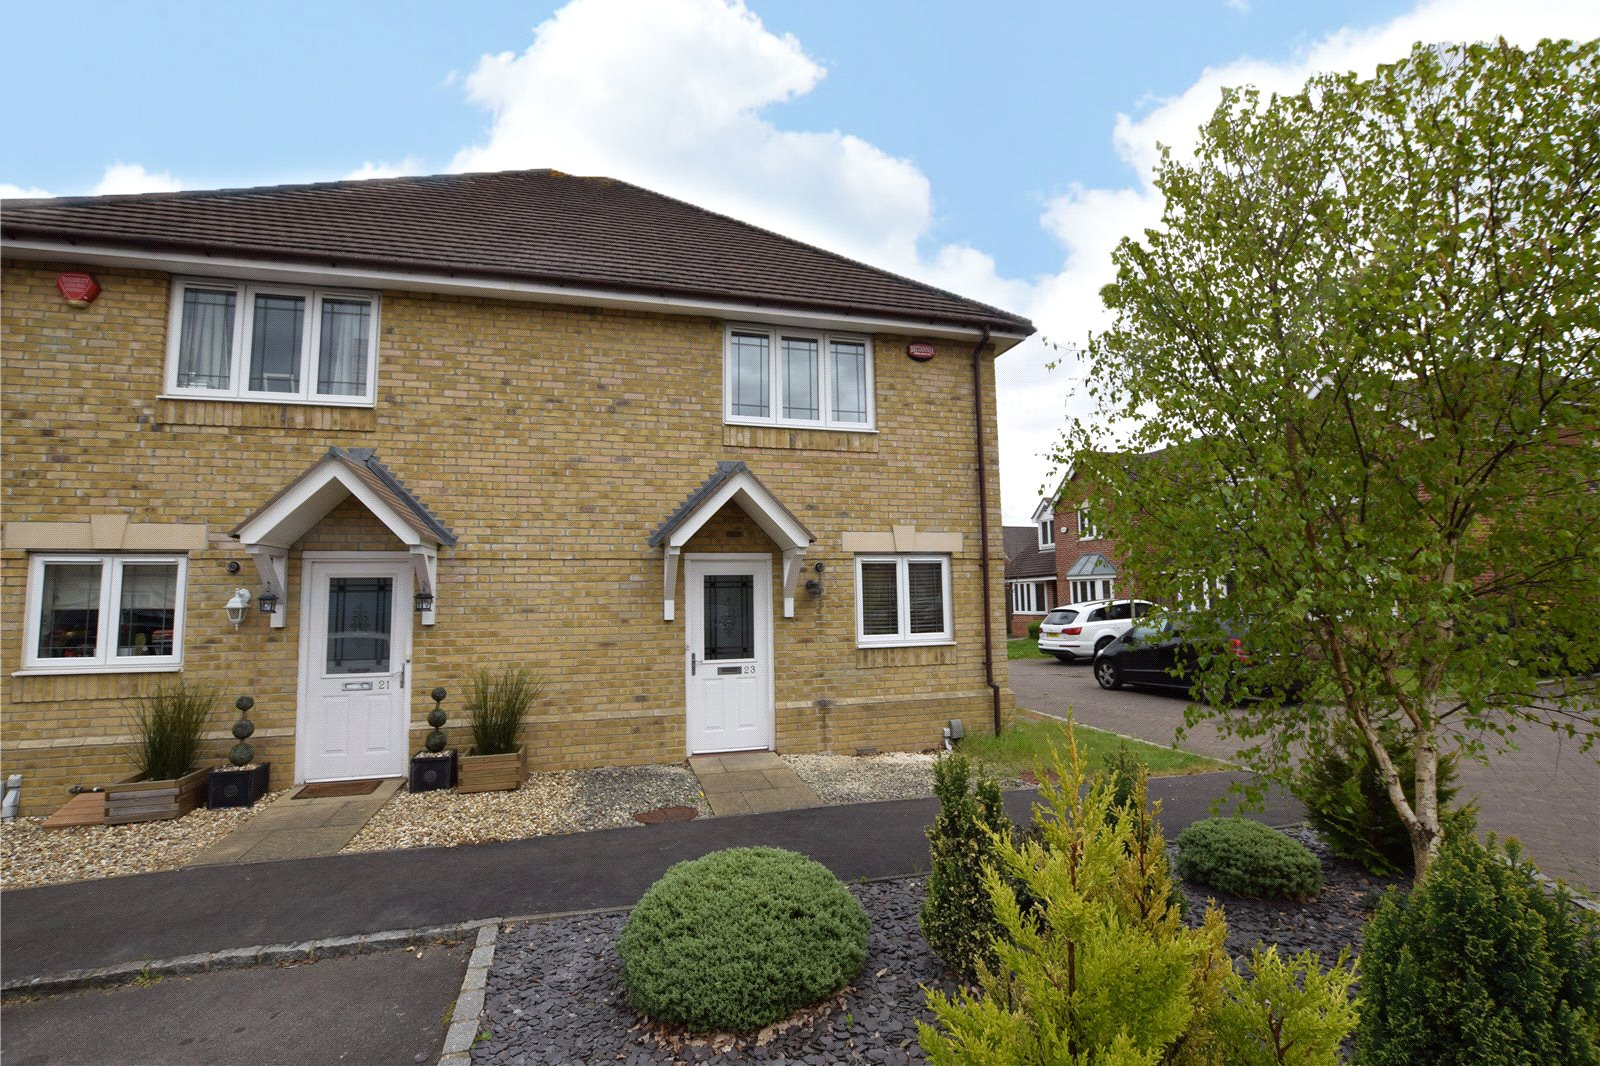 3 Bedrooms Semi Detached House for sale in Tiggall Close, Earley, Reading, Berkshire, RG6